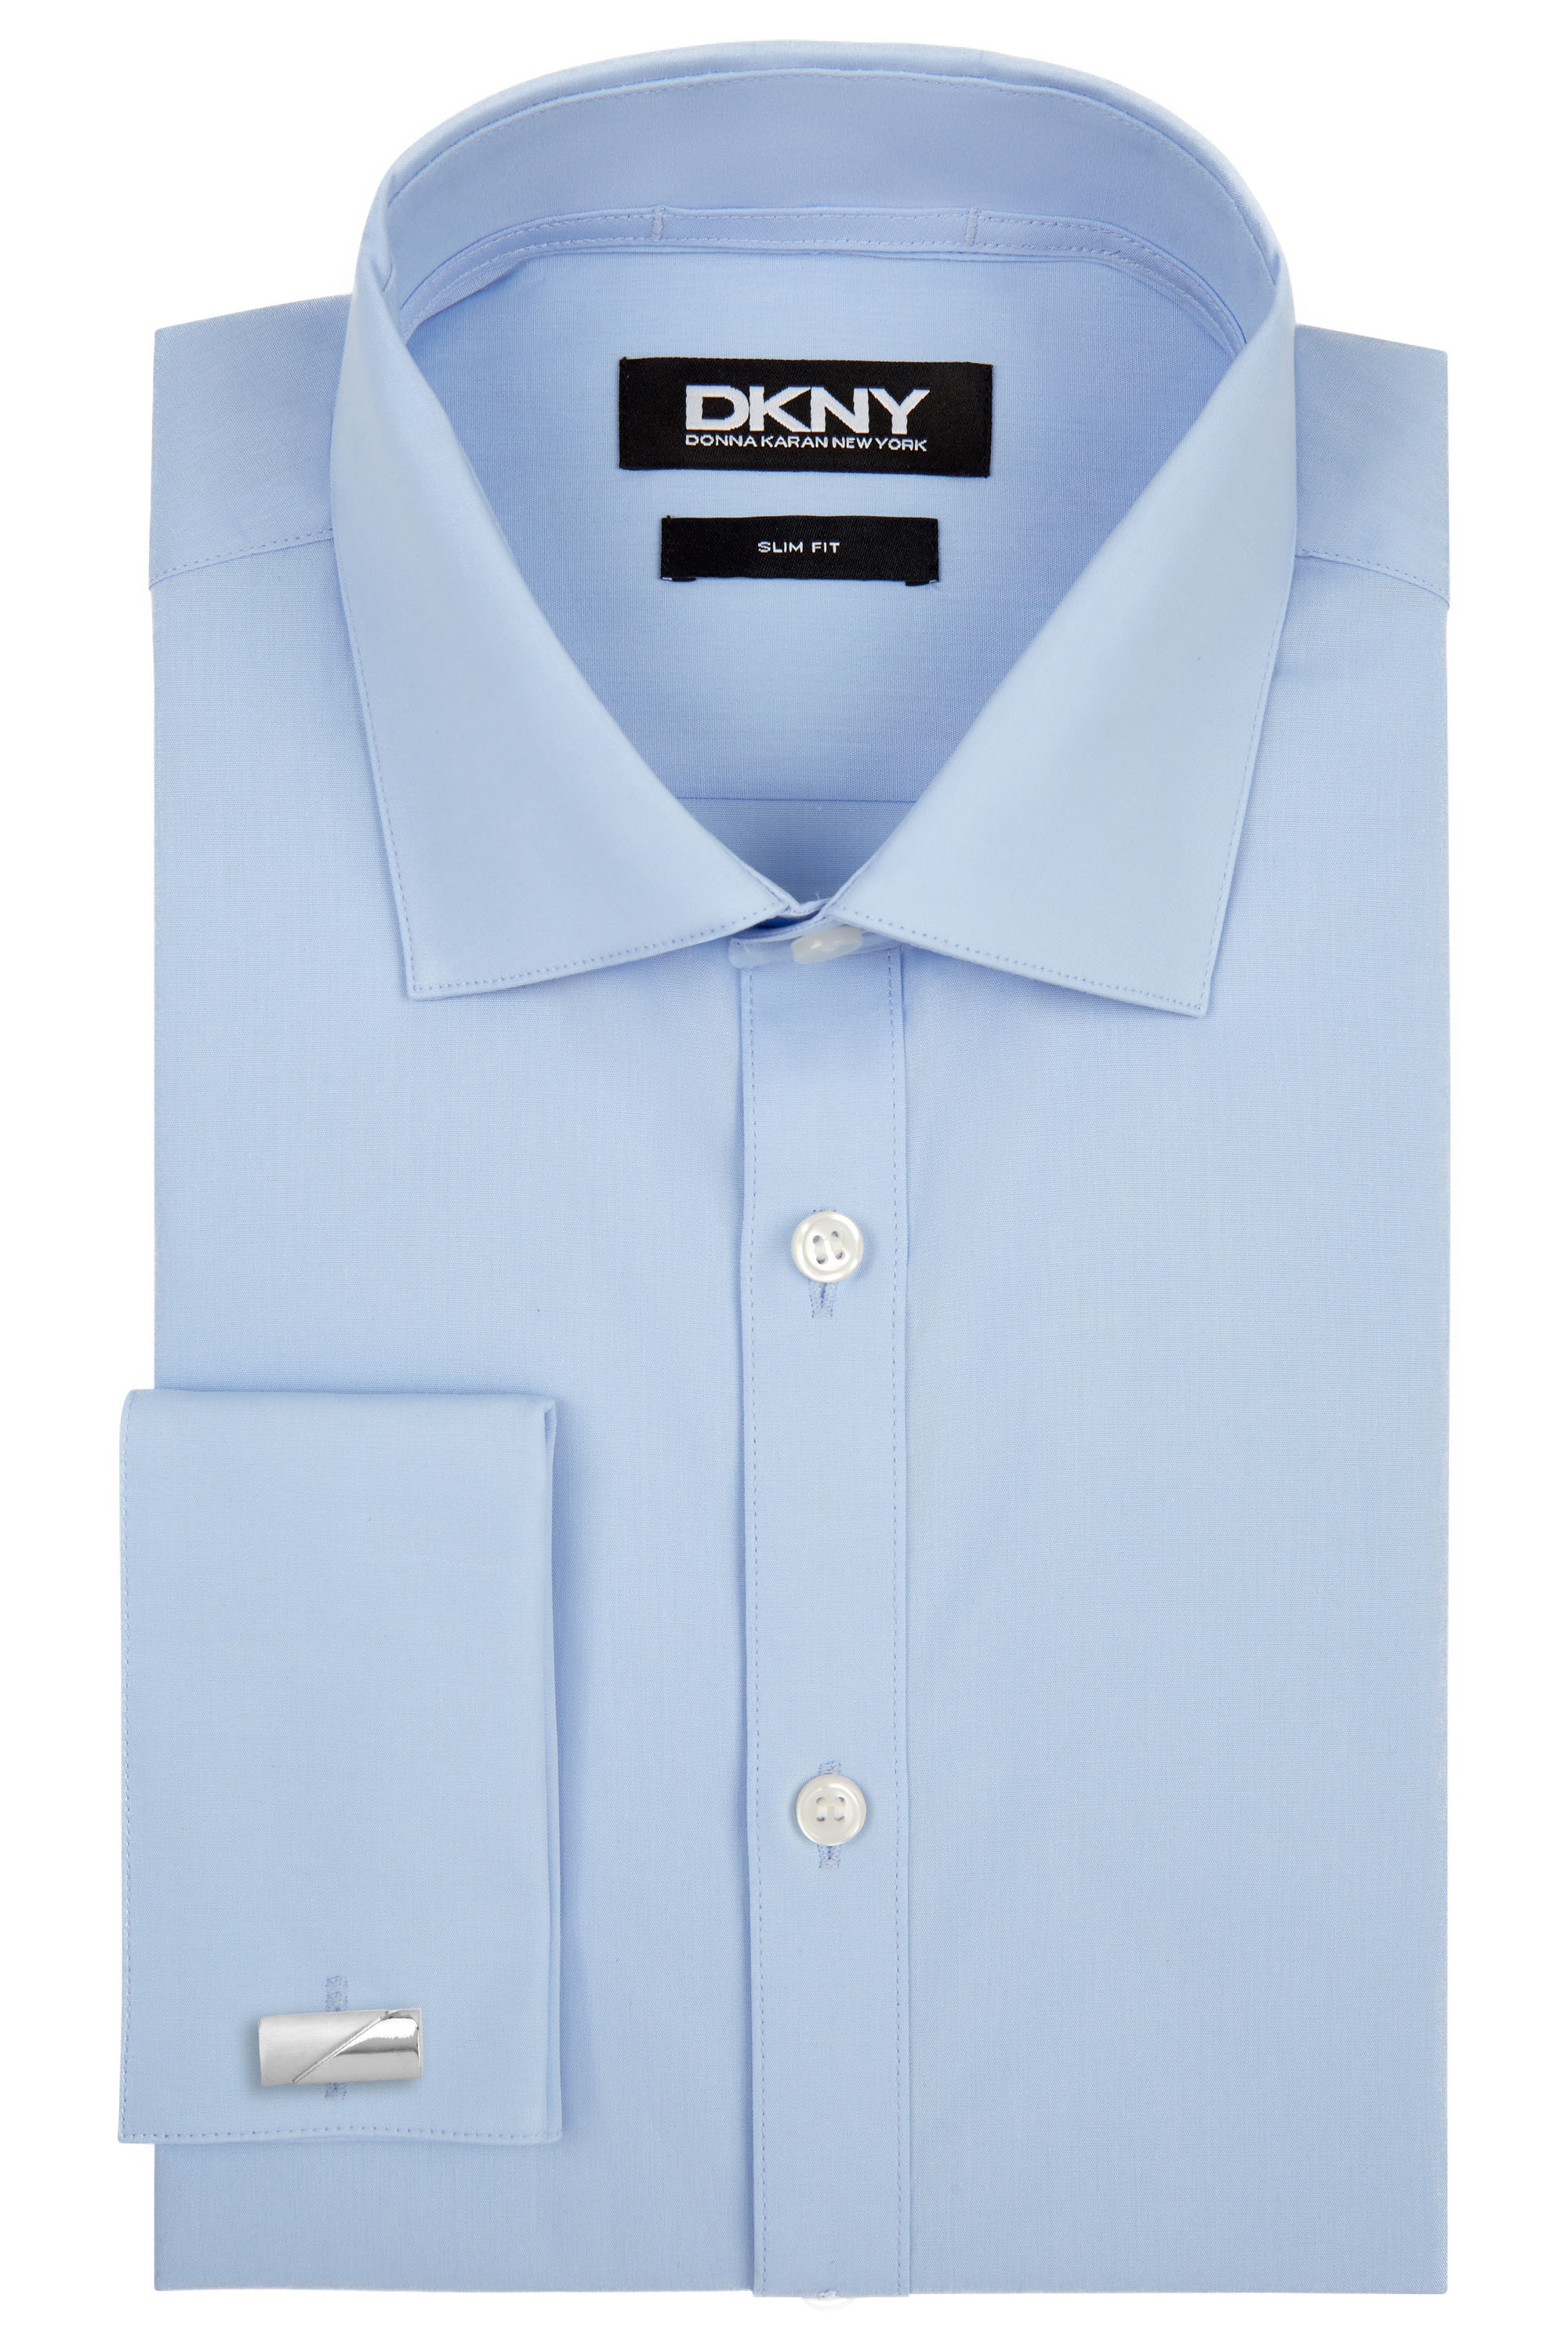 Cutaway Collar | Dress Shirts with Different Colored Collars | Curved Collar Dress Shirts